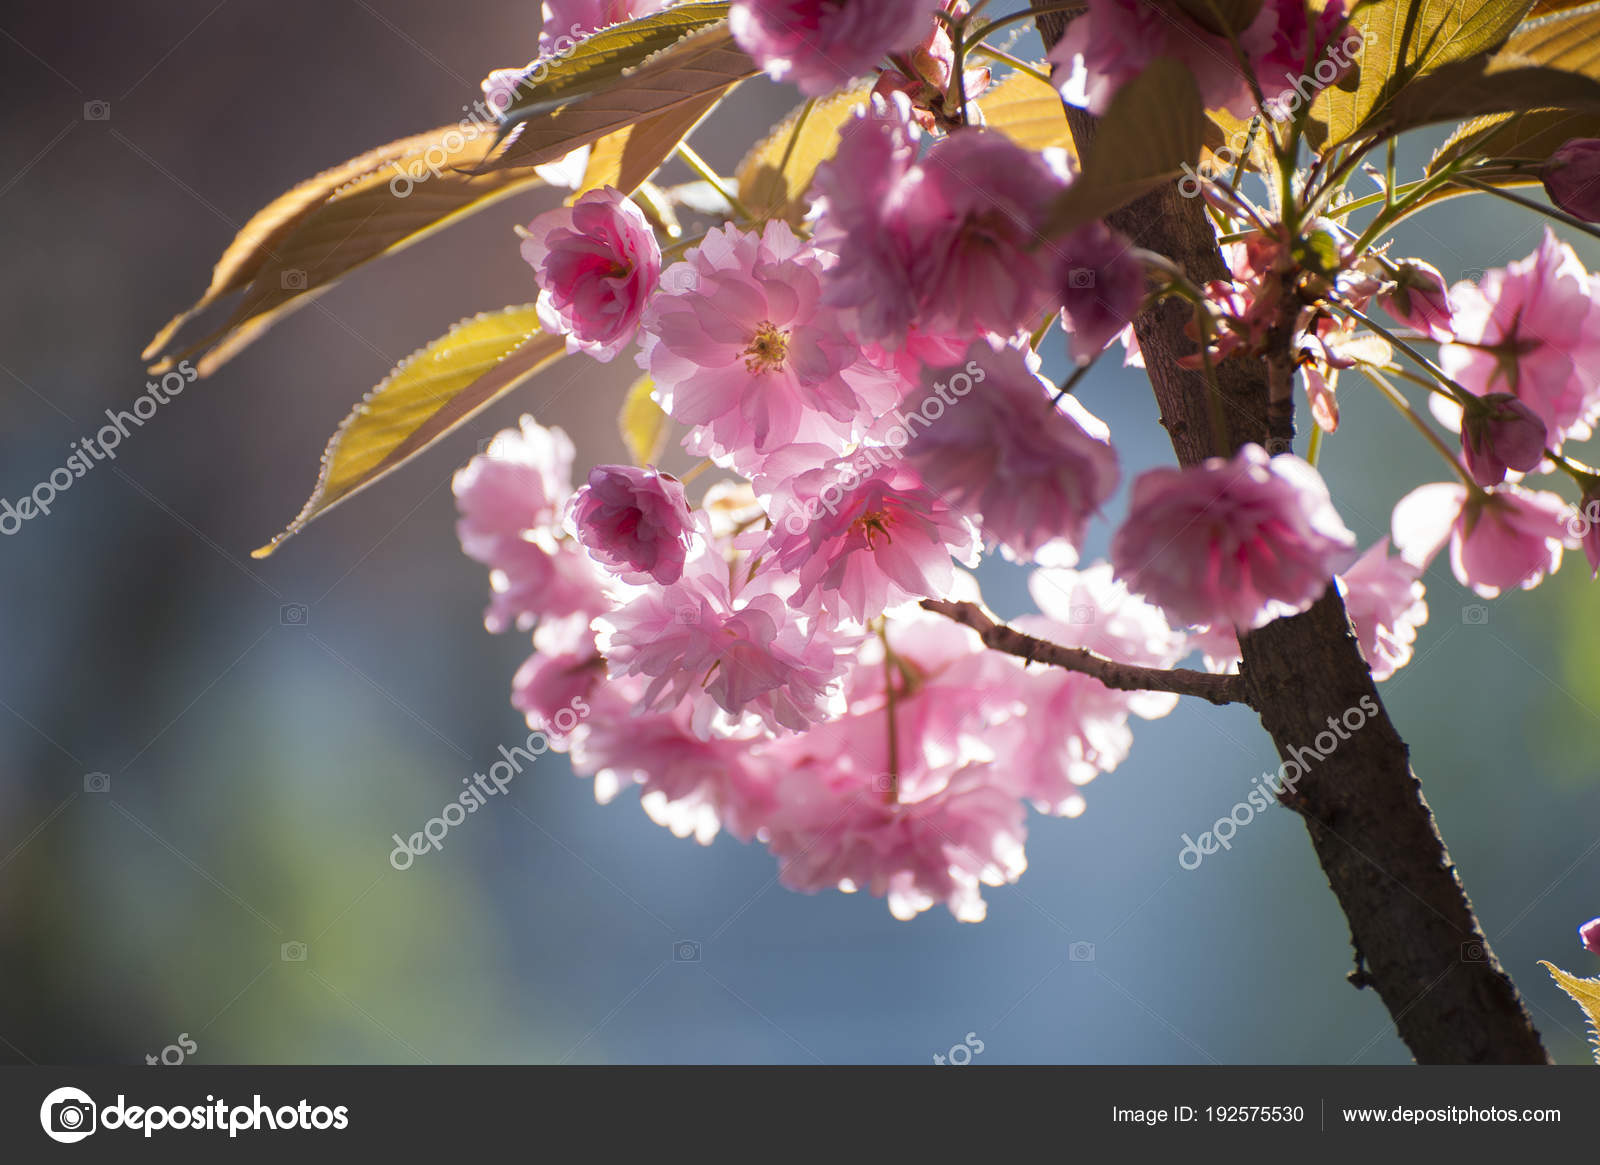 Rare pink sakuras flowers in bloom stock photo serhiibyk rare pink sakuras flowers in bloom stock photo mightylinksfo